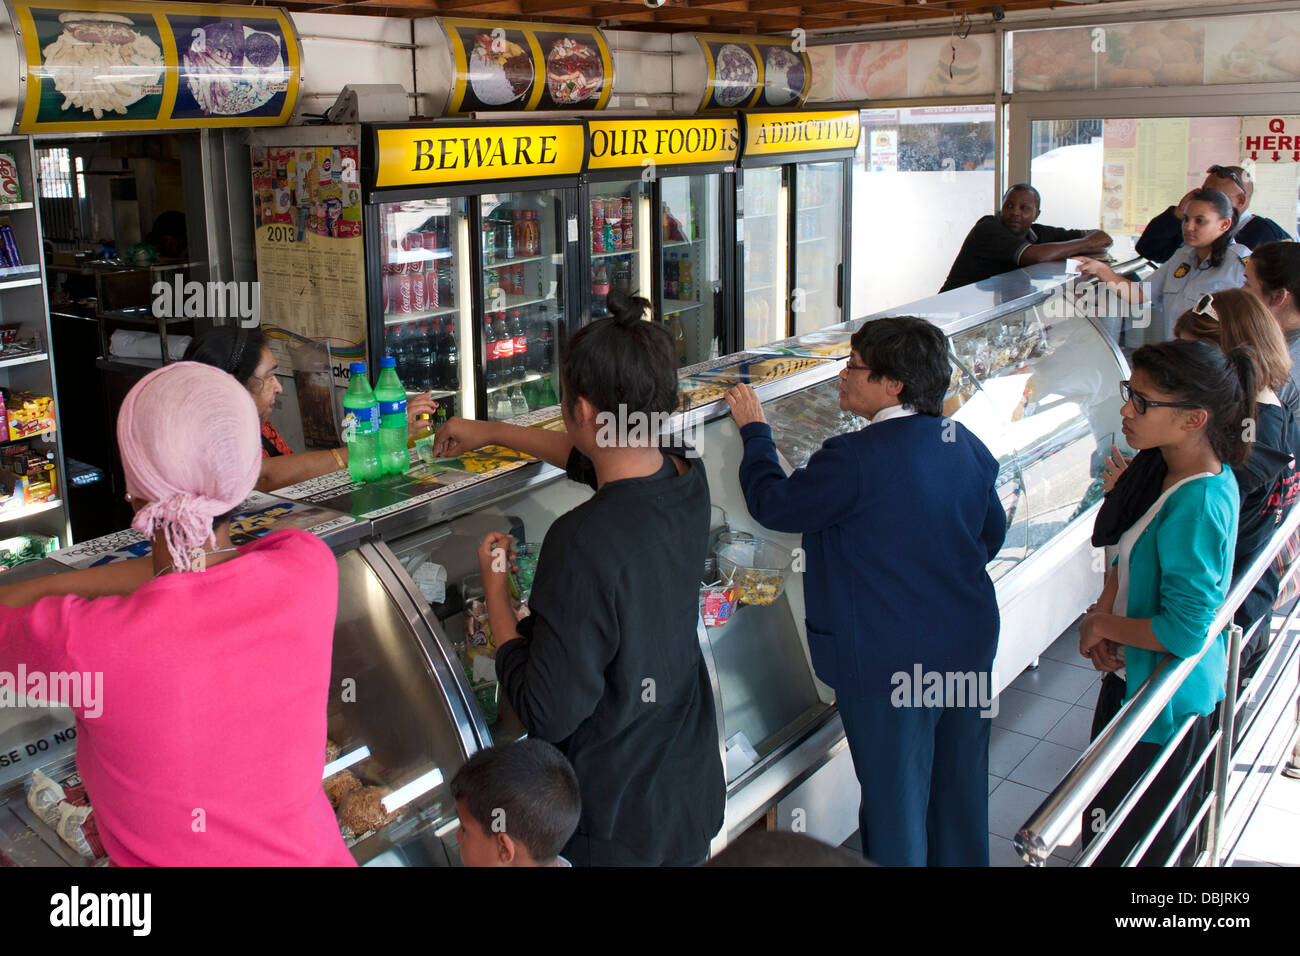 Interior of the Golden Dish take-away in Athlone, Cape Town, South Africa. - Stock Image